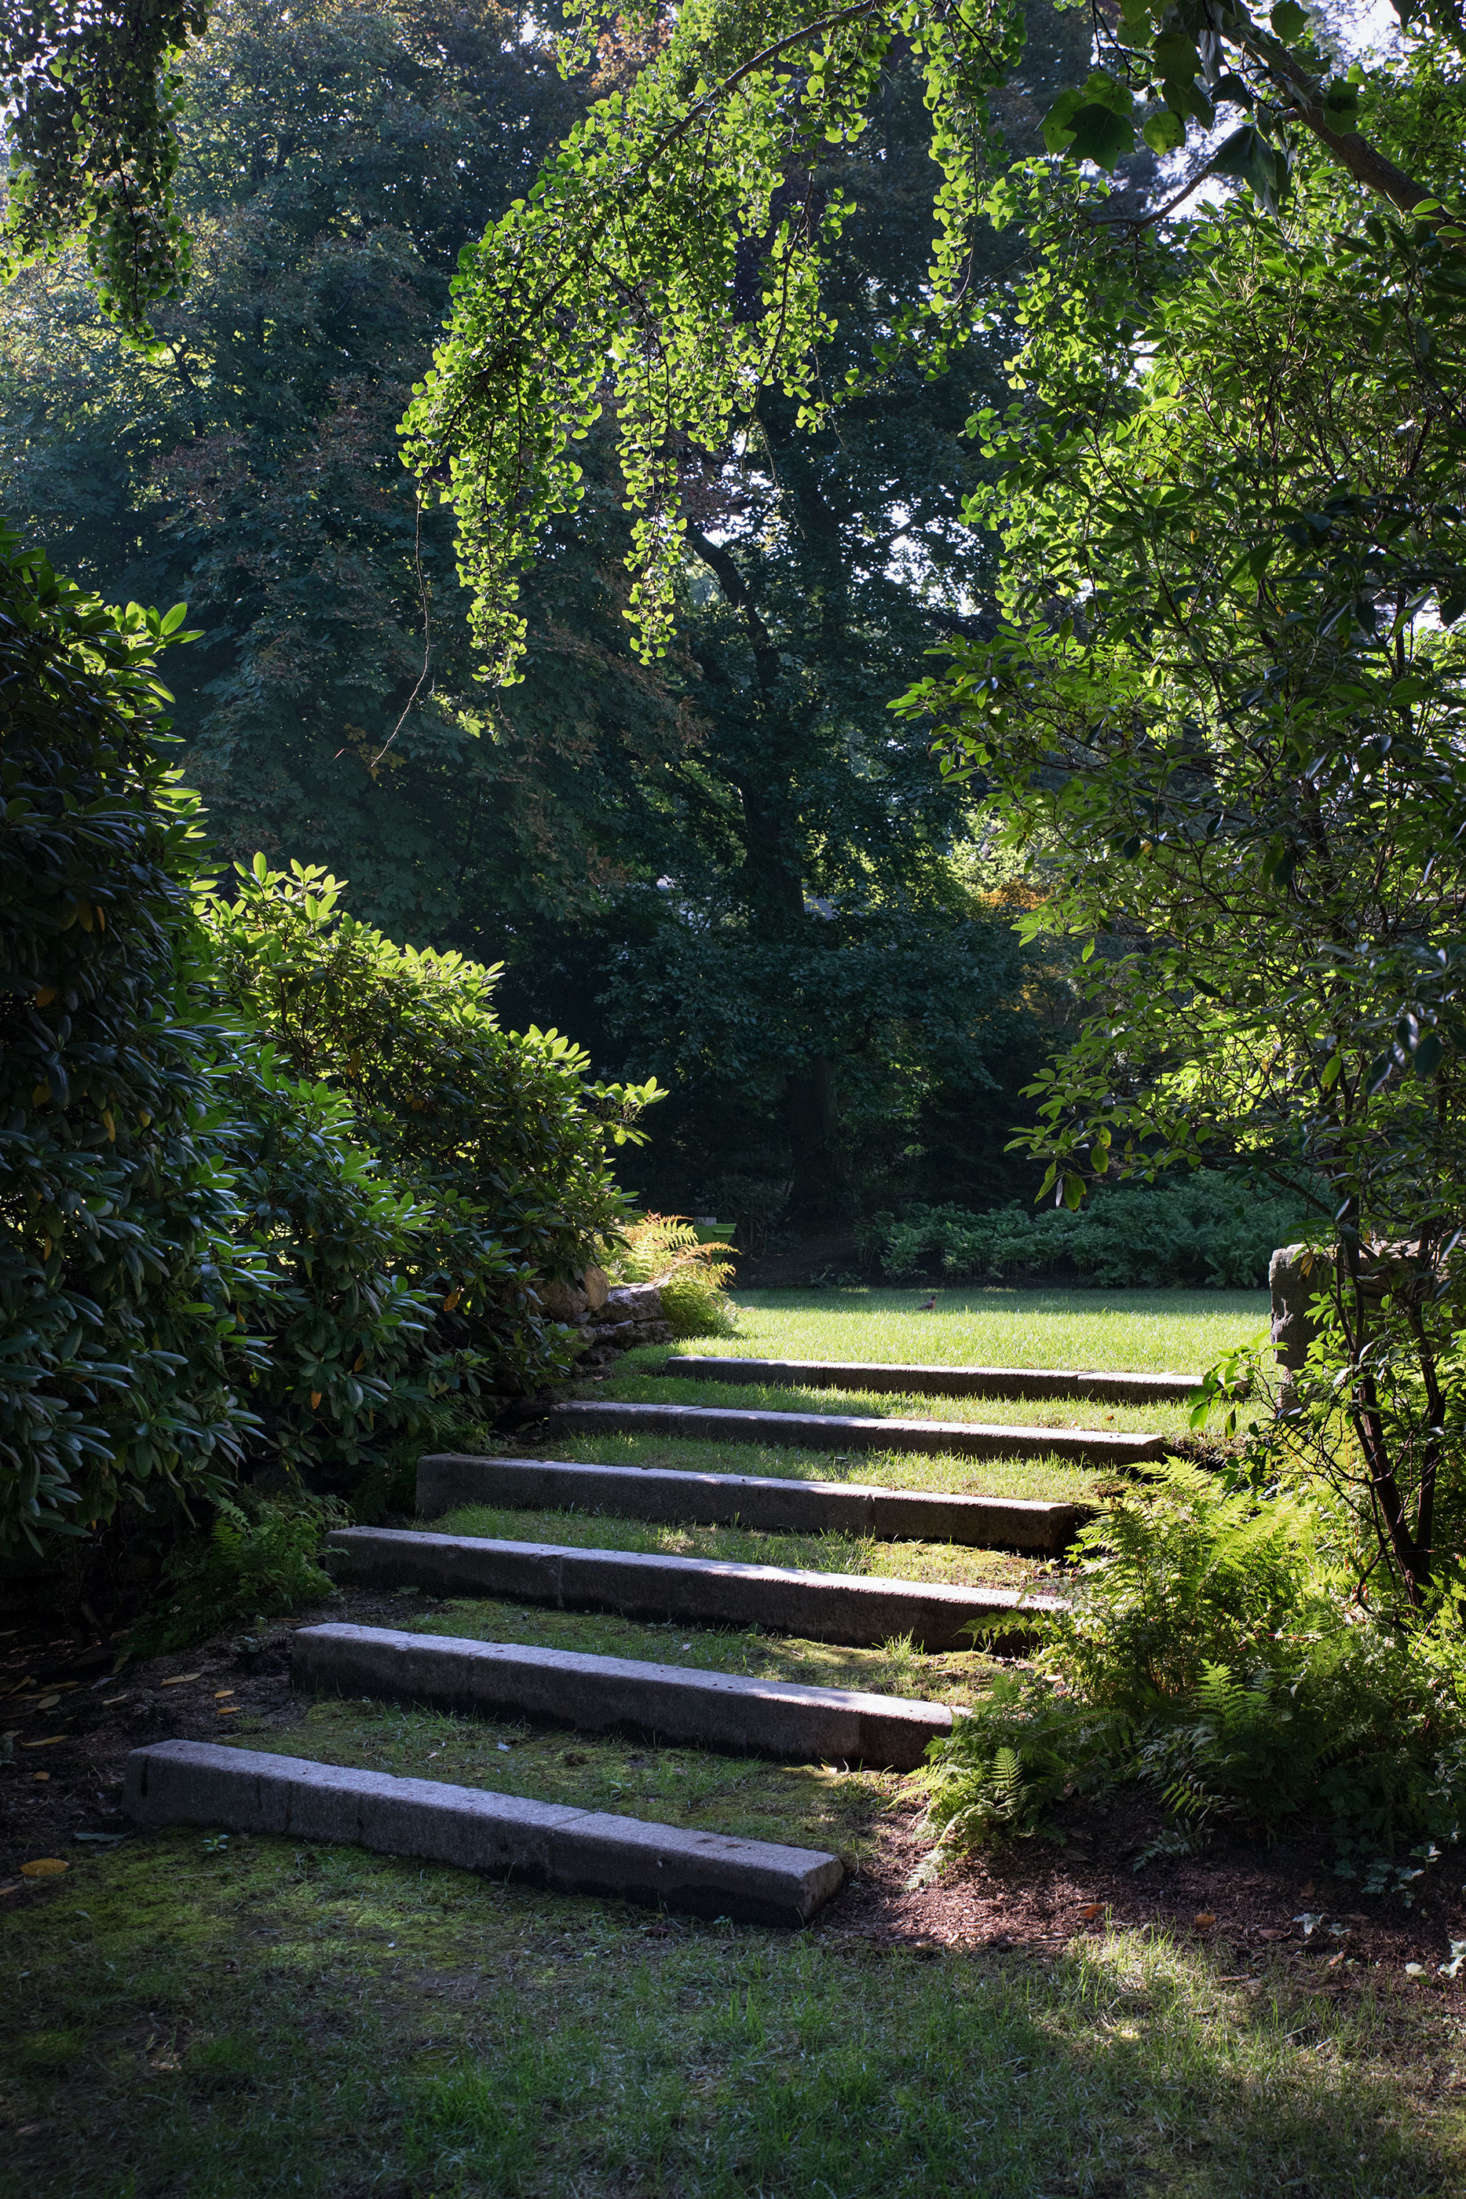 Completing the circuit around the yard, another set of inlaid stone steps leads towards the front of the house.